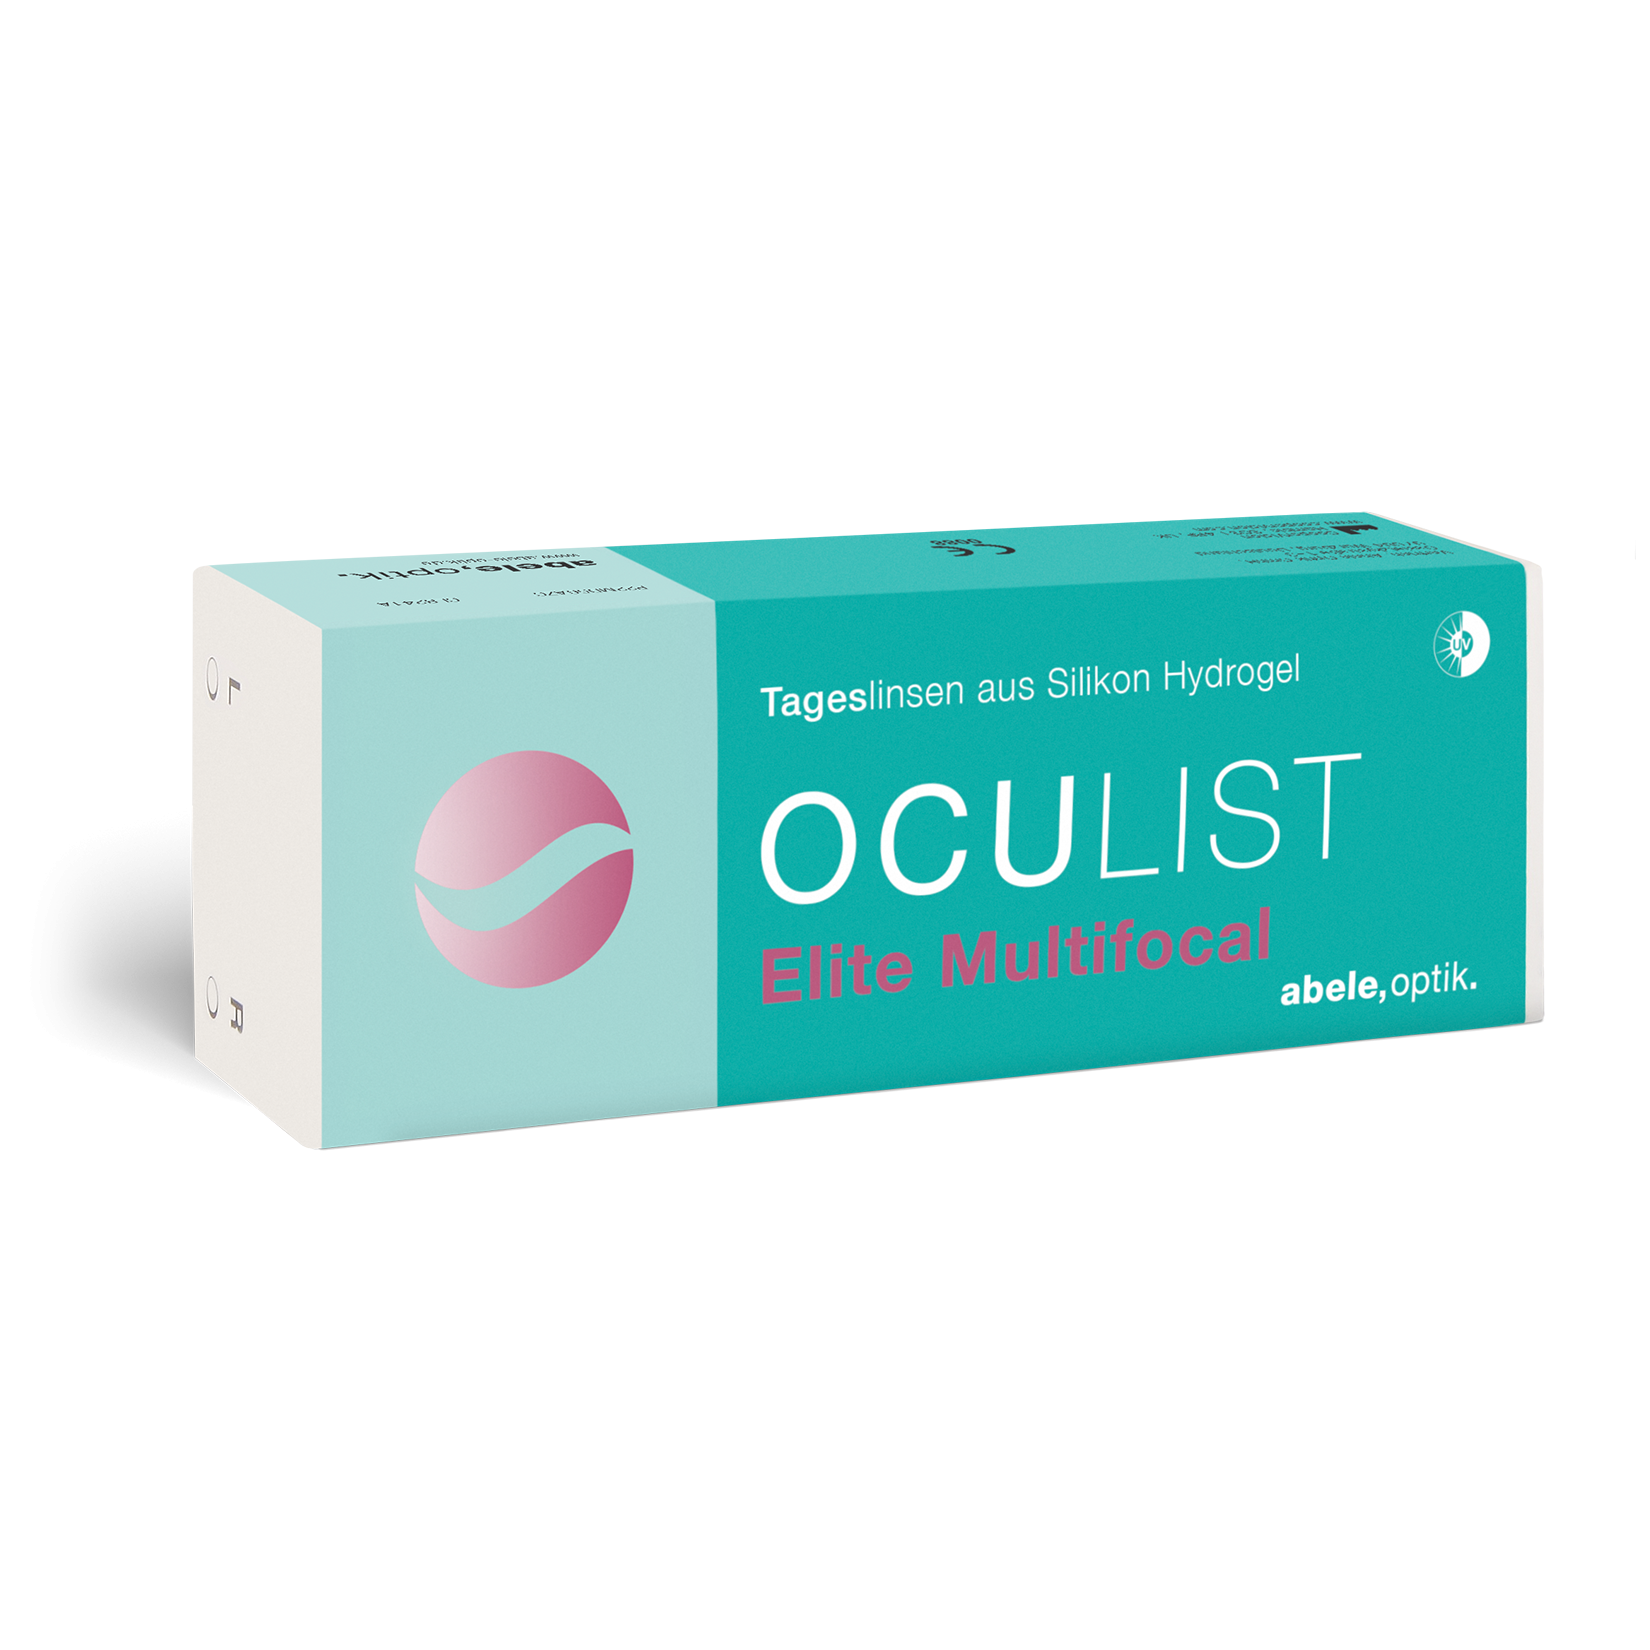 Oculist Elite Multifocal Tageslinse, Abele Optik (30 Stk.)